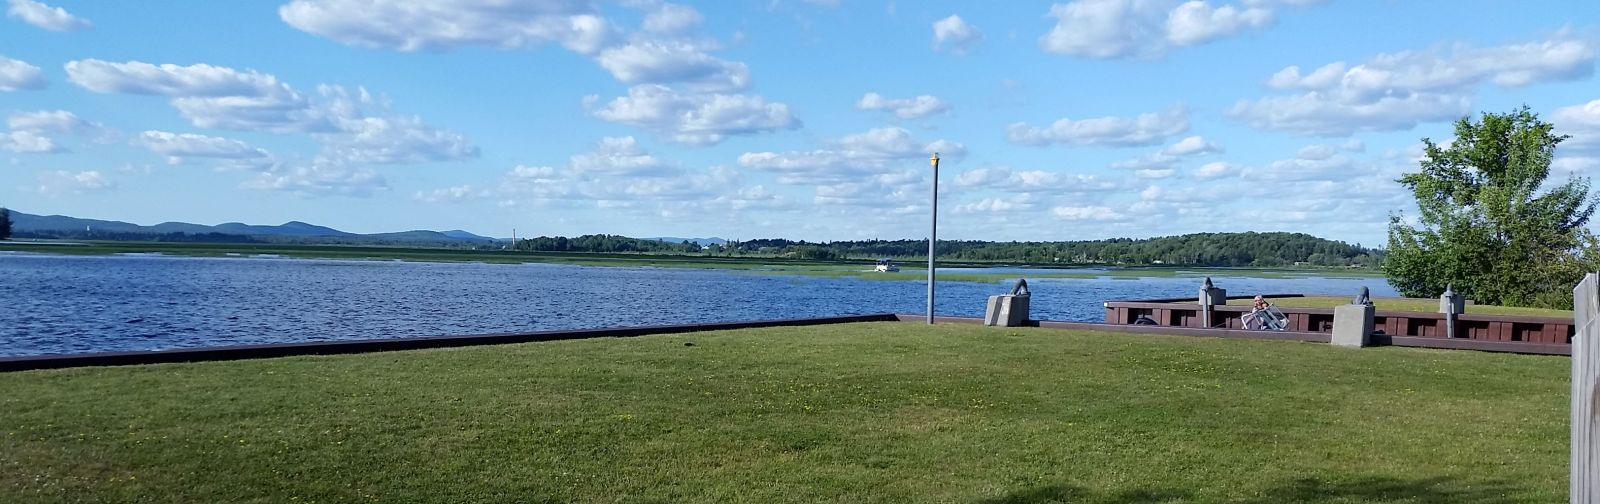 The Route 30 boat launch is a great place to start your bike ride.